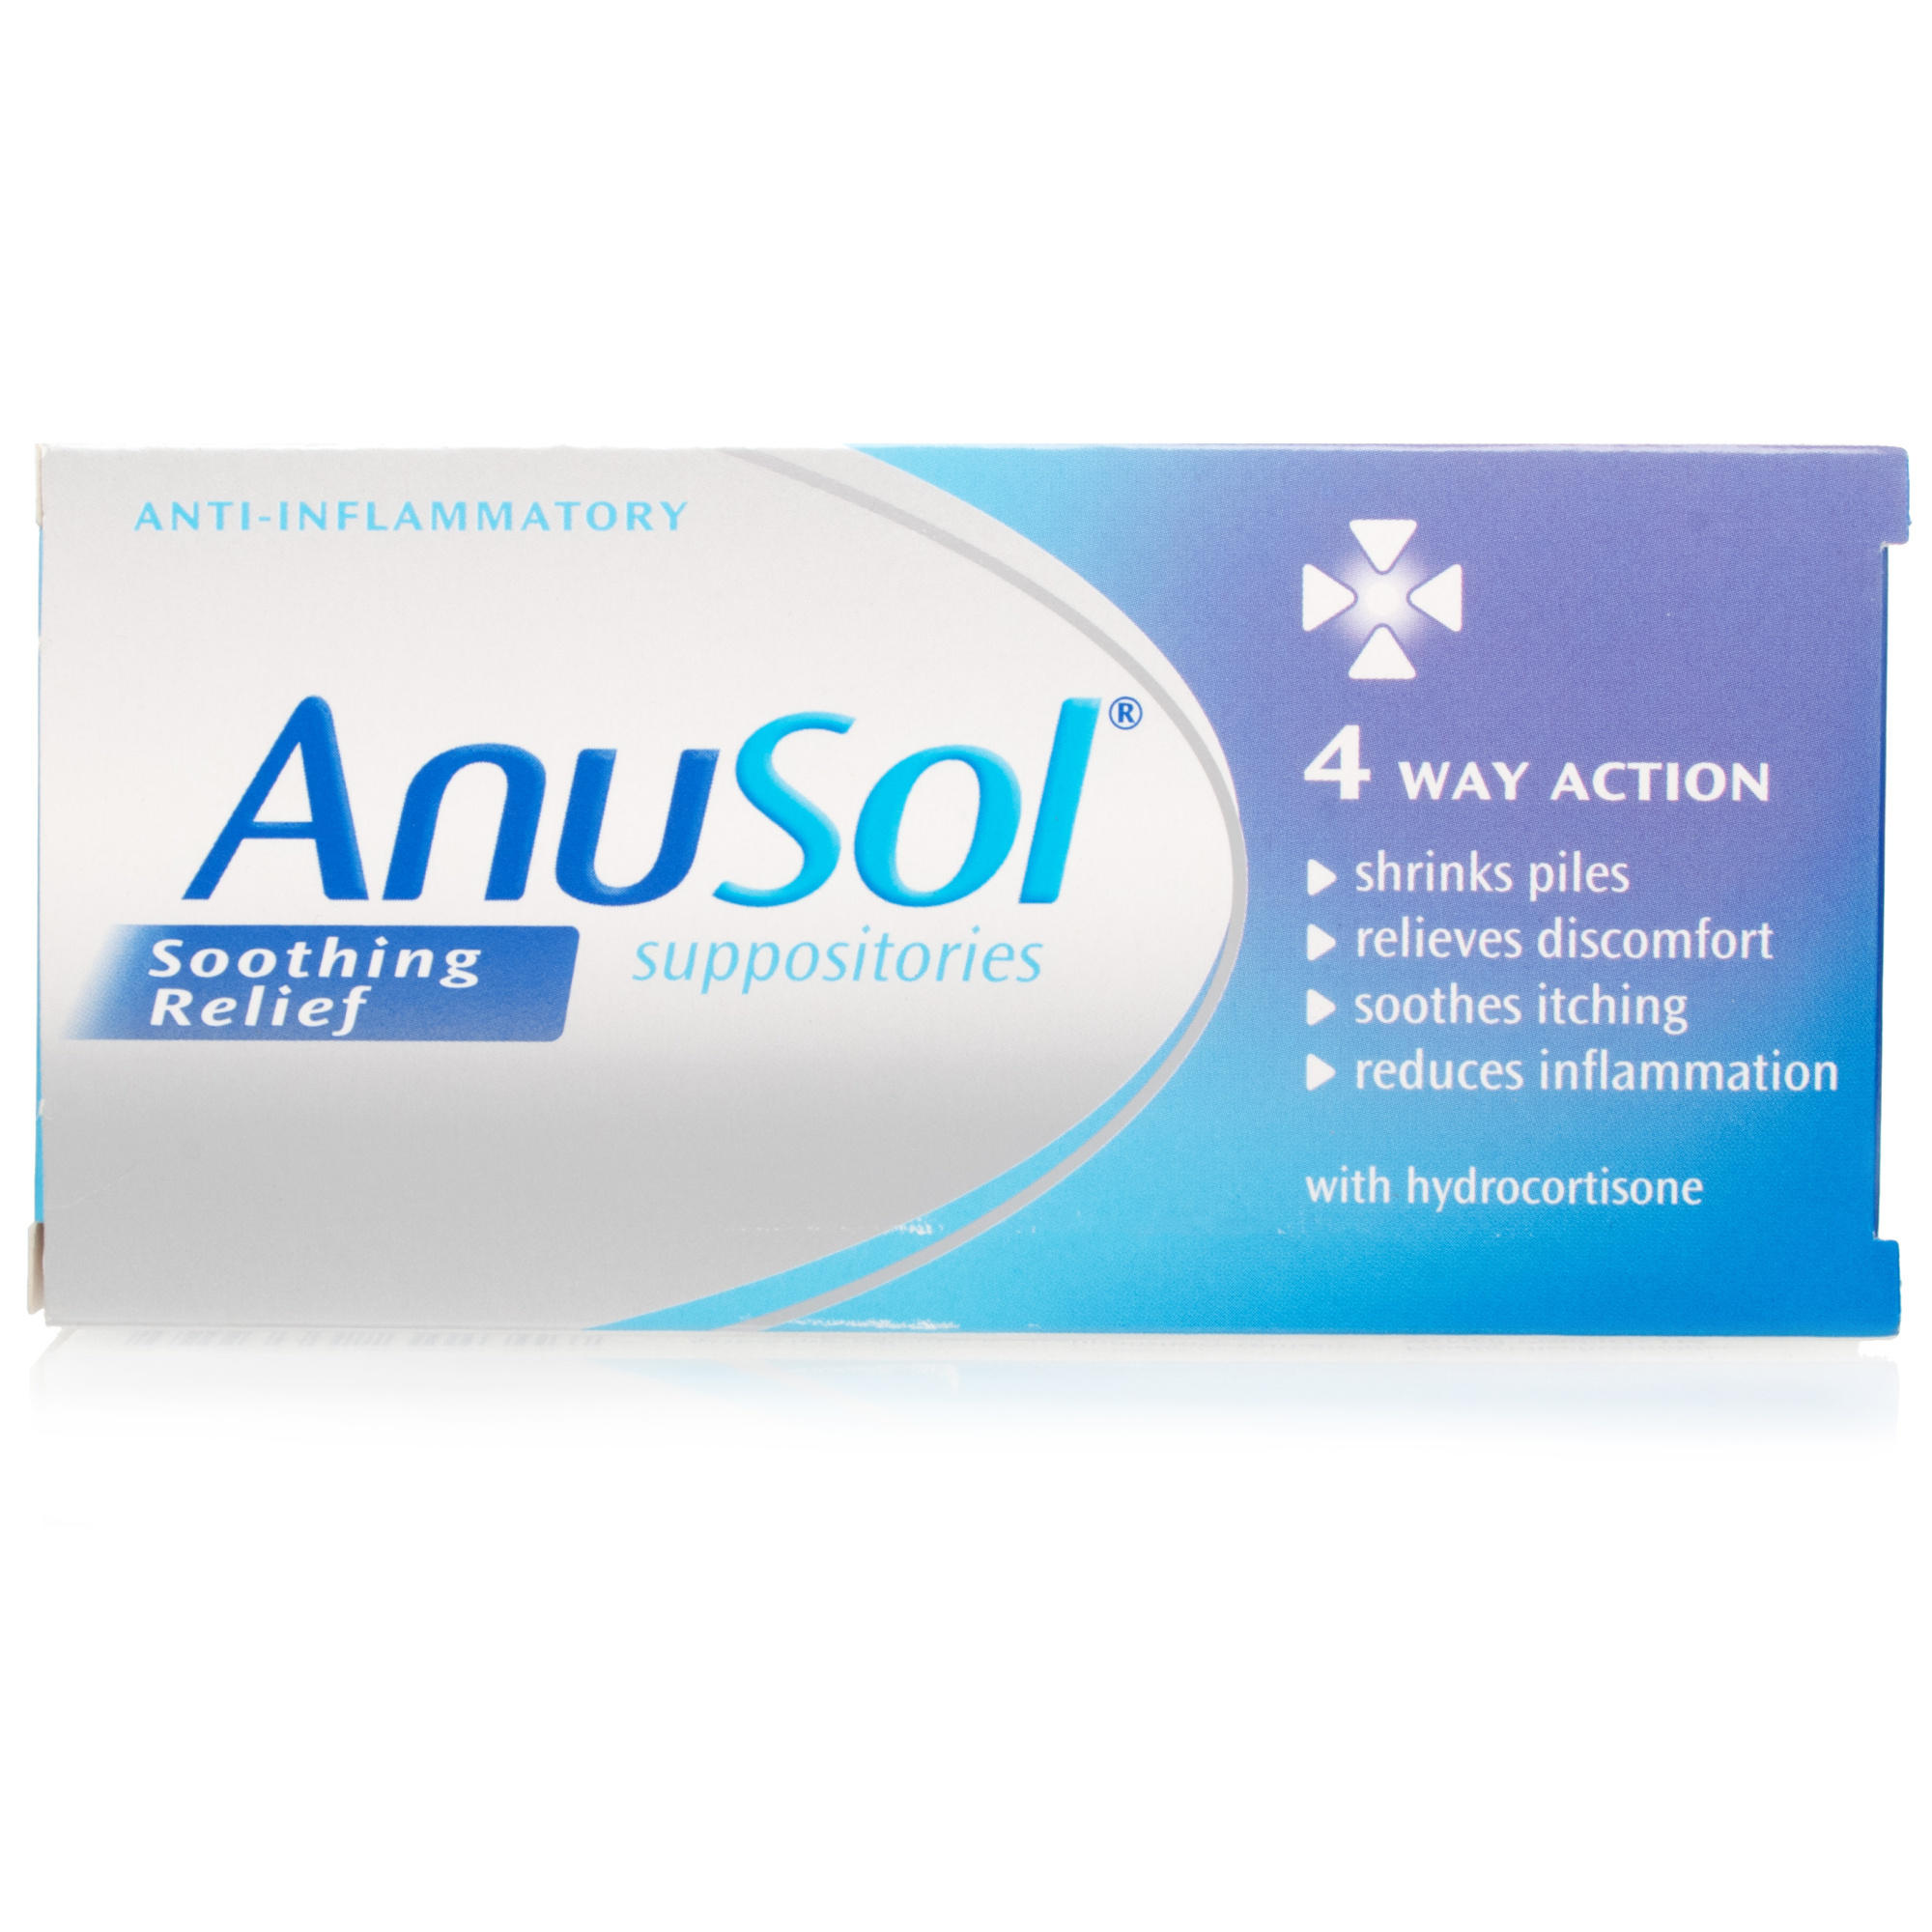 Anusol Soothing Relief Suppositories